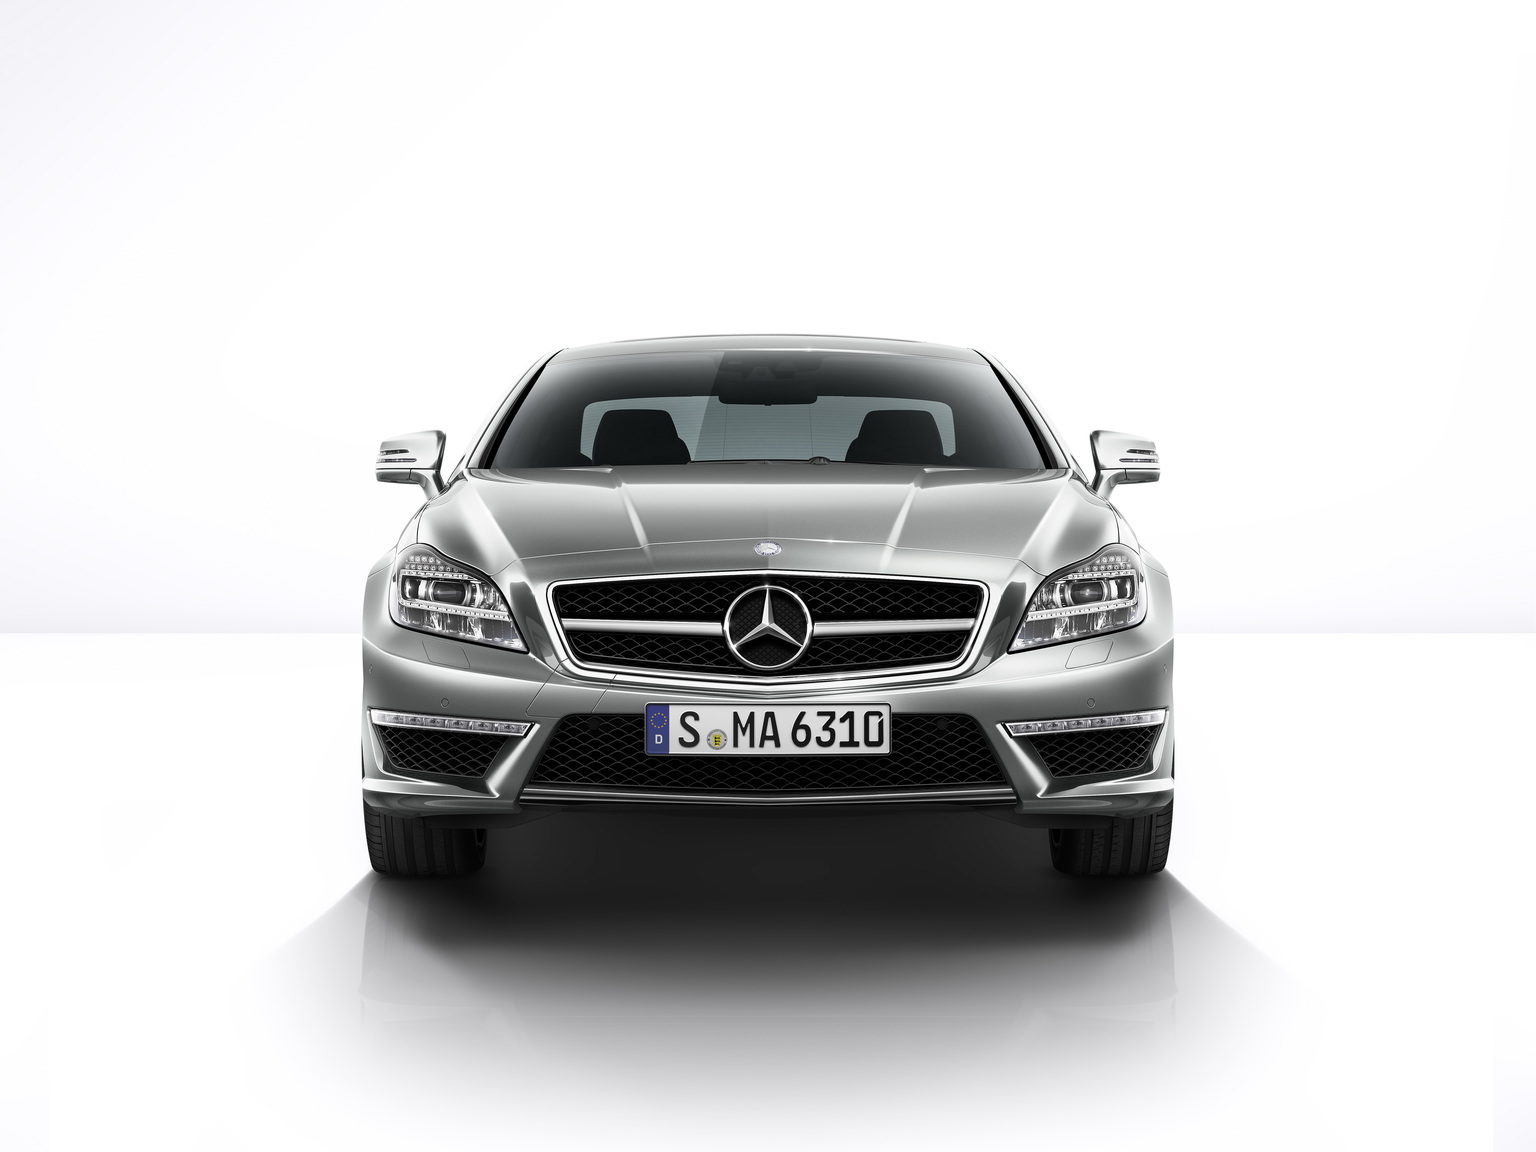 2013 Mercedes-Benz CLS 63 AMG 4MATIC